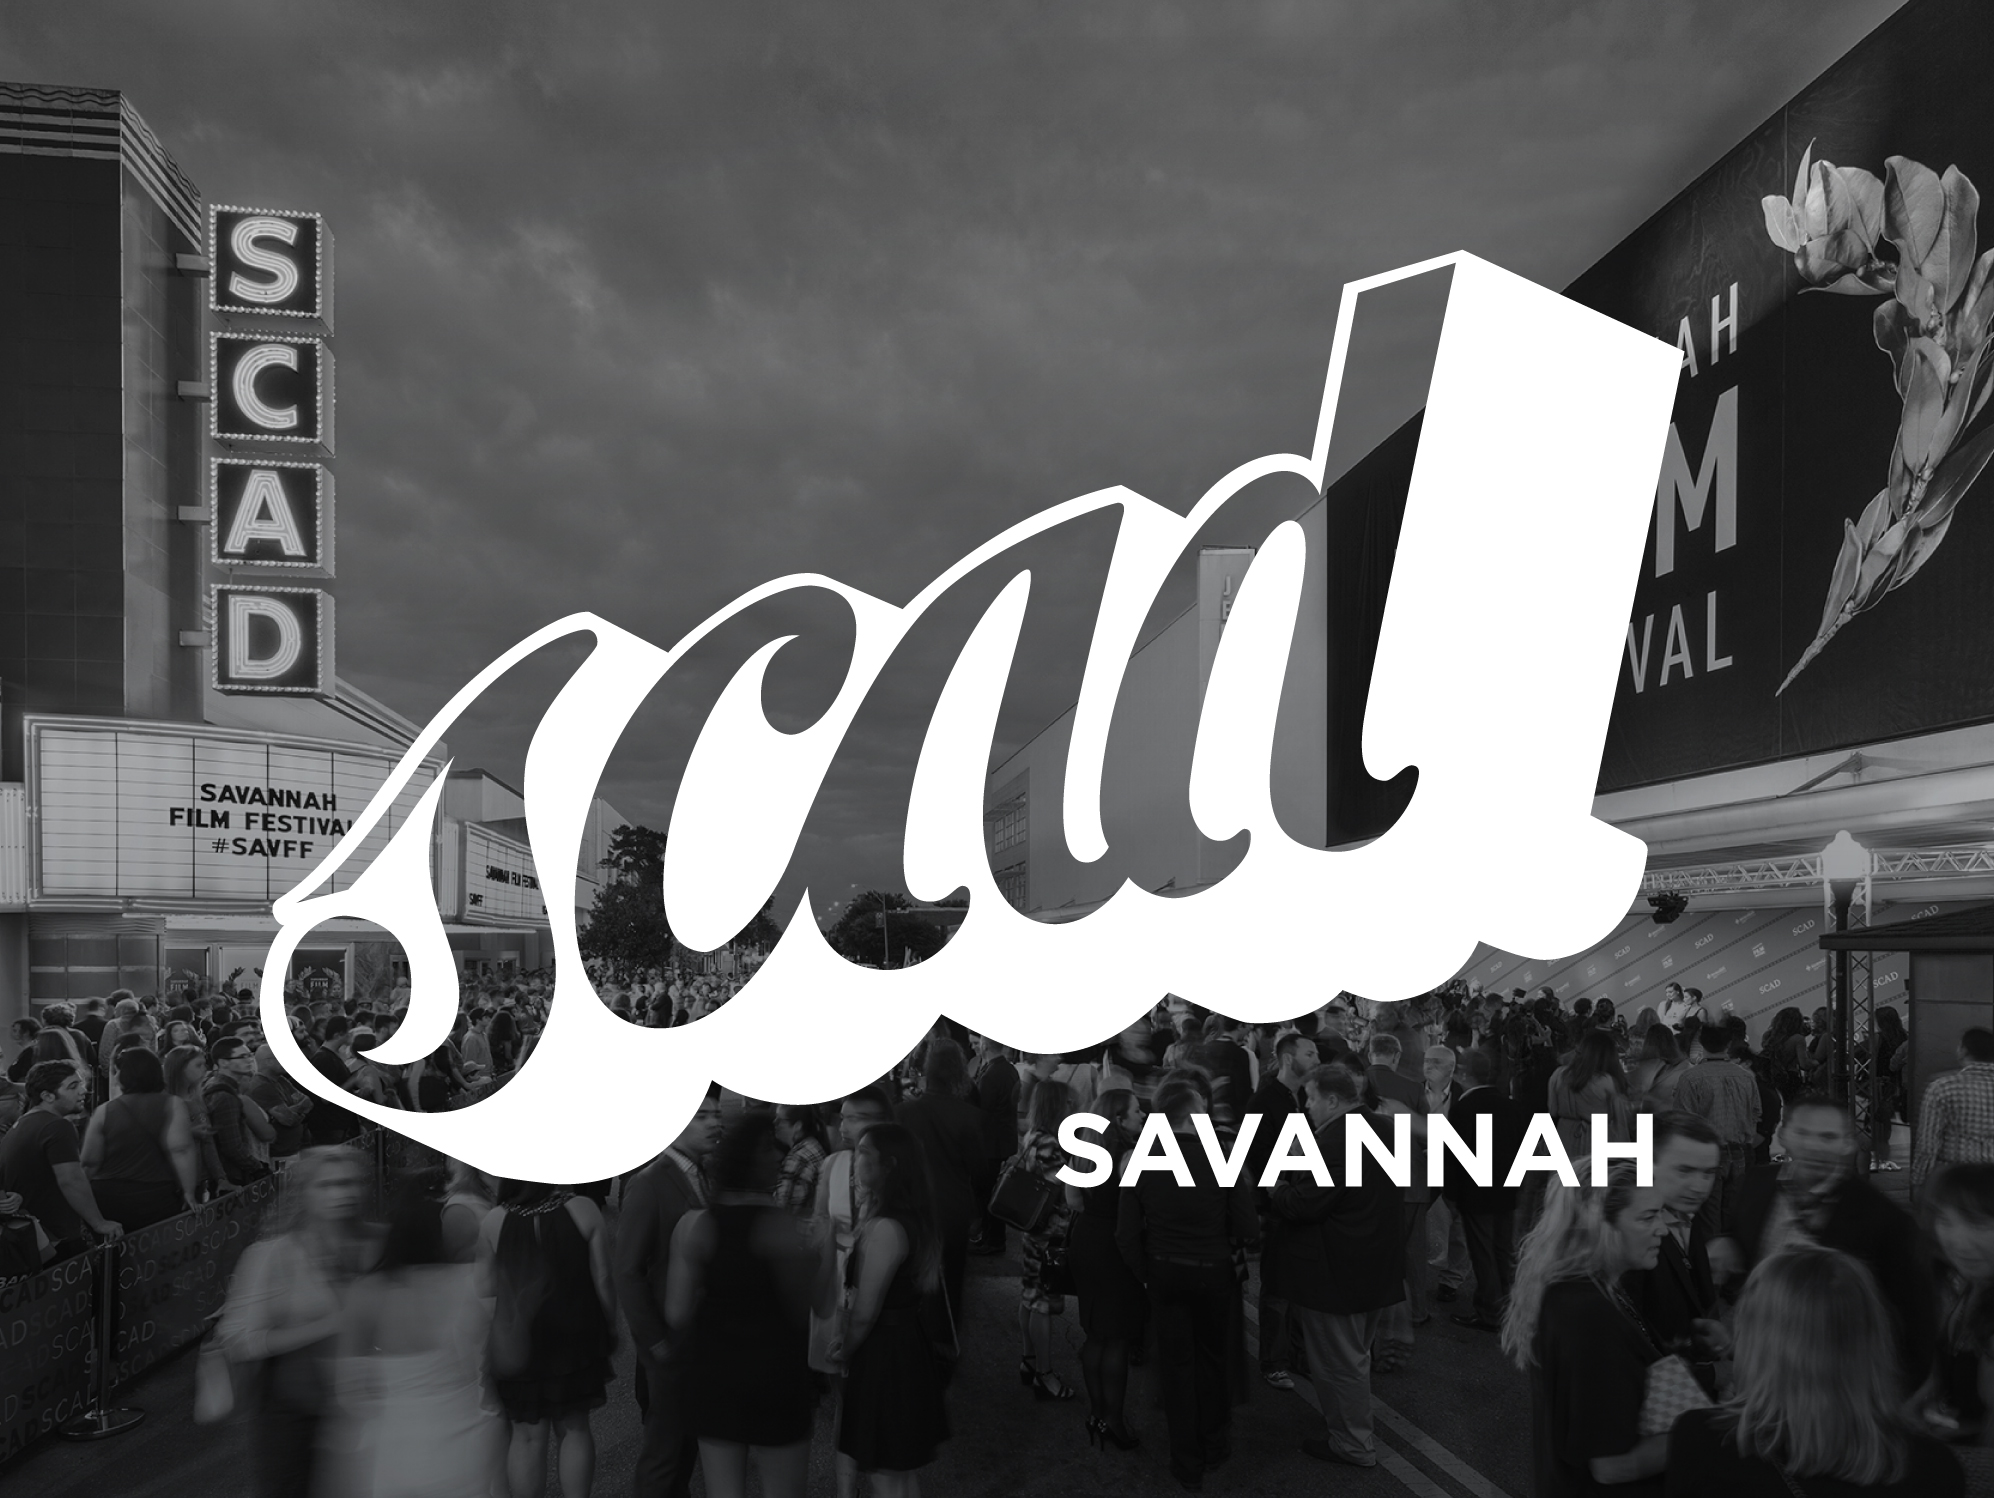 SCAD -